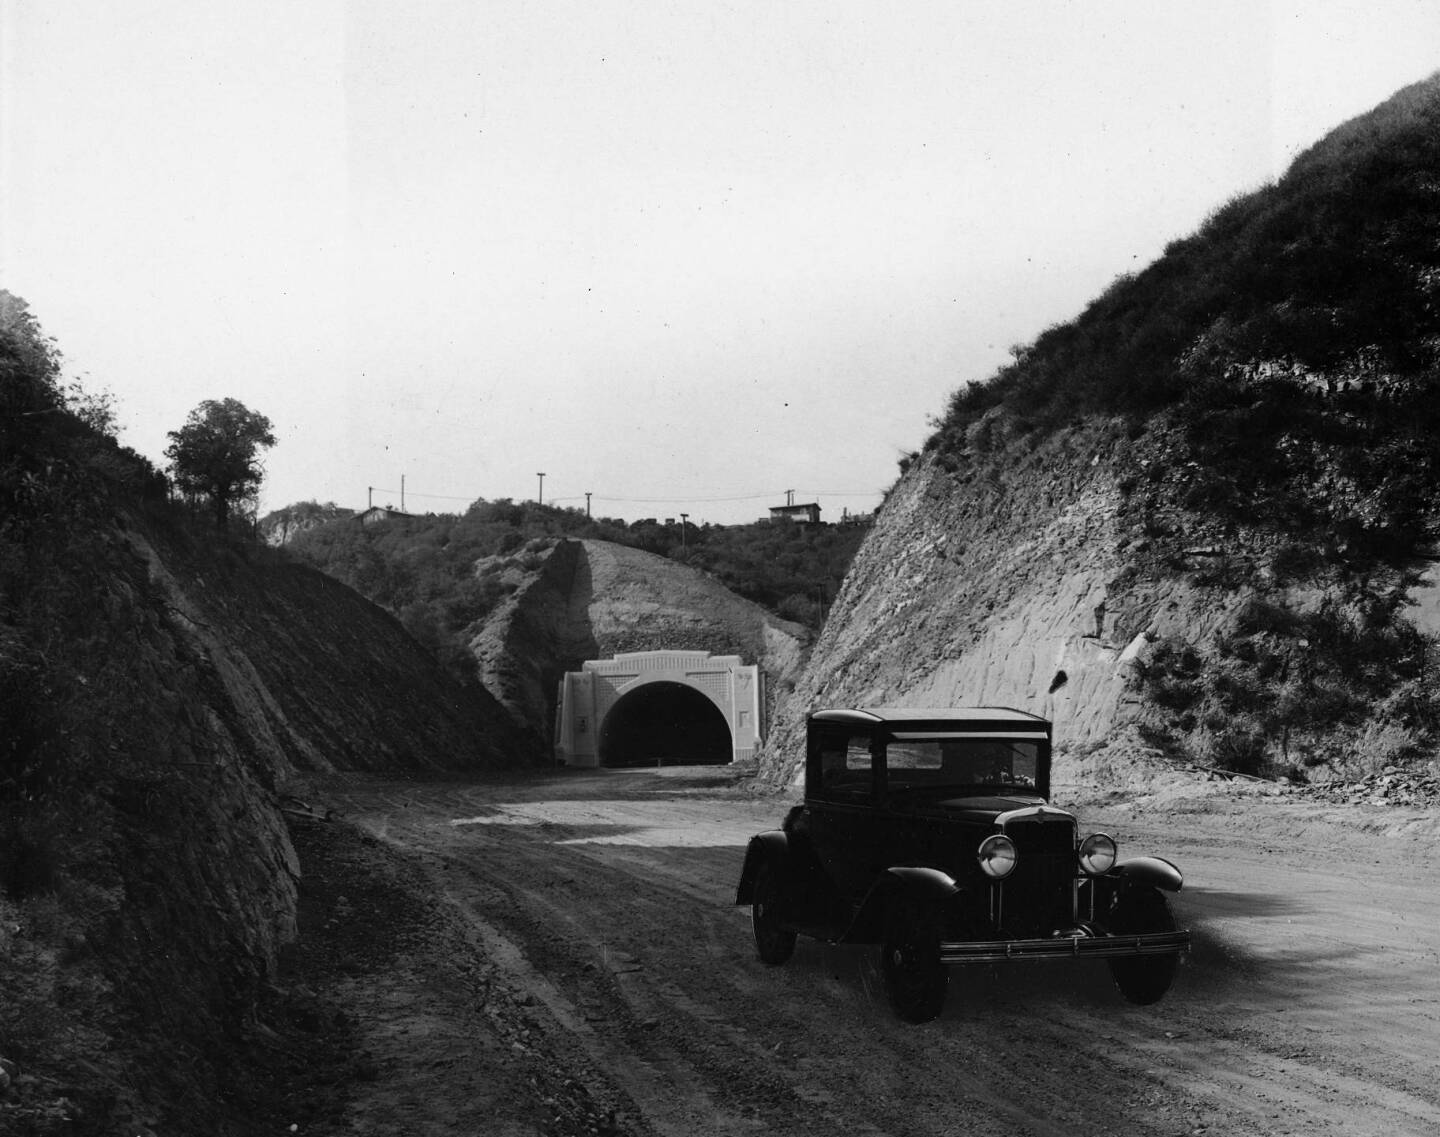 The Sepulveda Tunnel in 1930, when Sepulveda Boulevard was still an unpaved road.